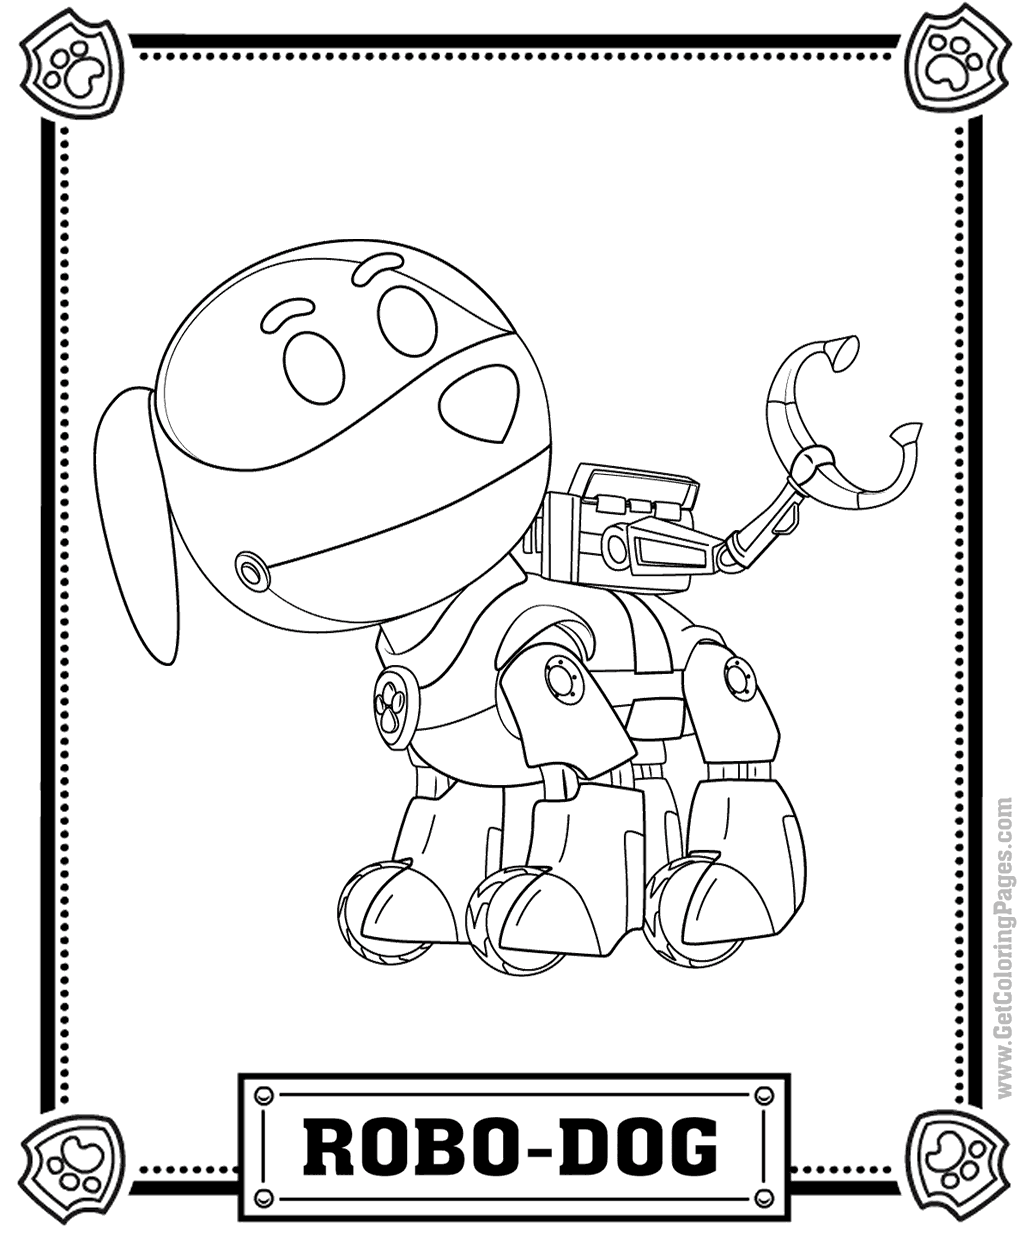 Robo-Dog Paw Patrol Coloring Page